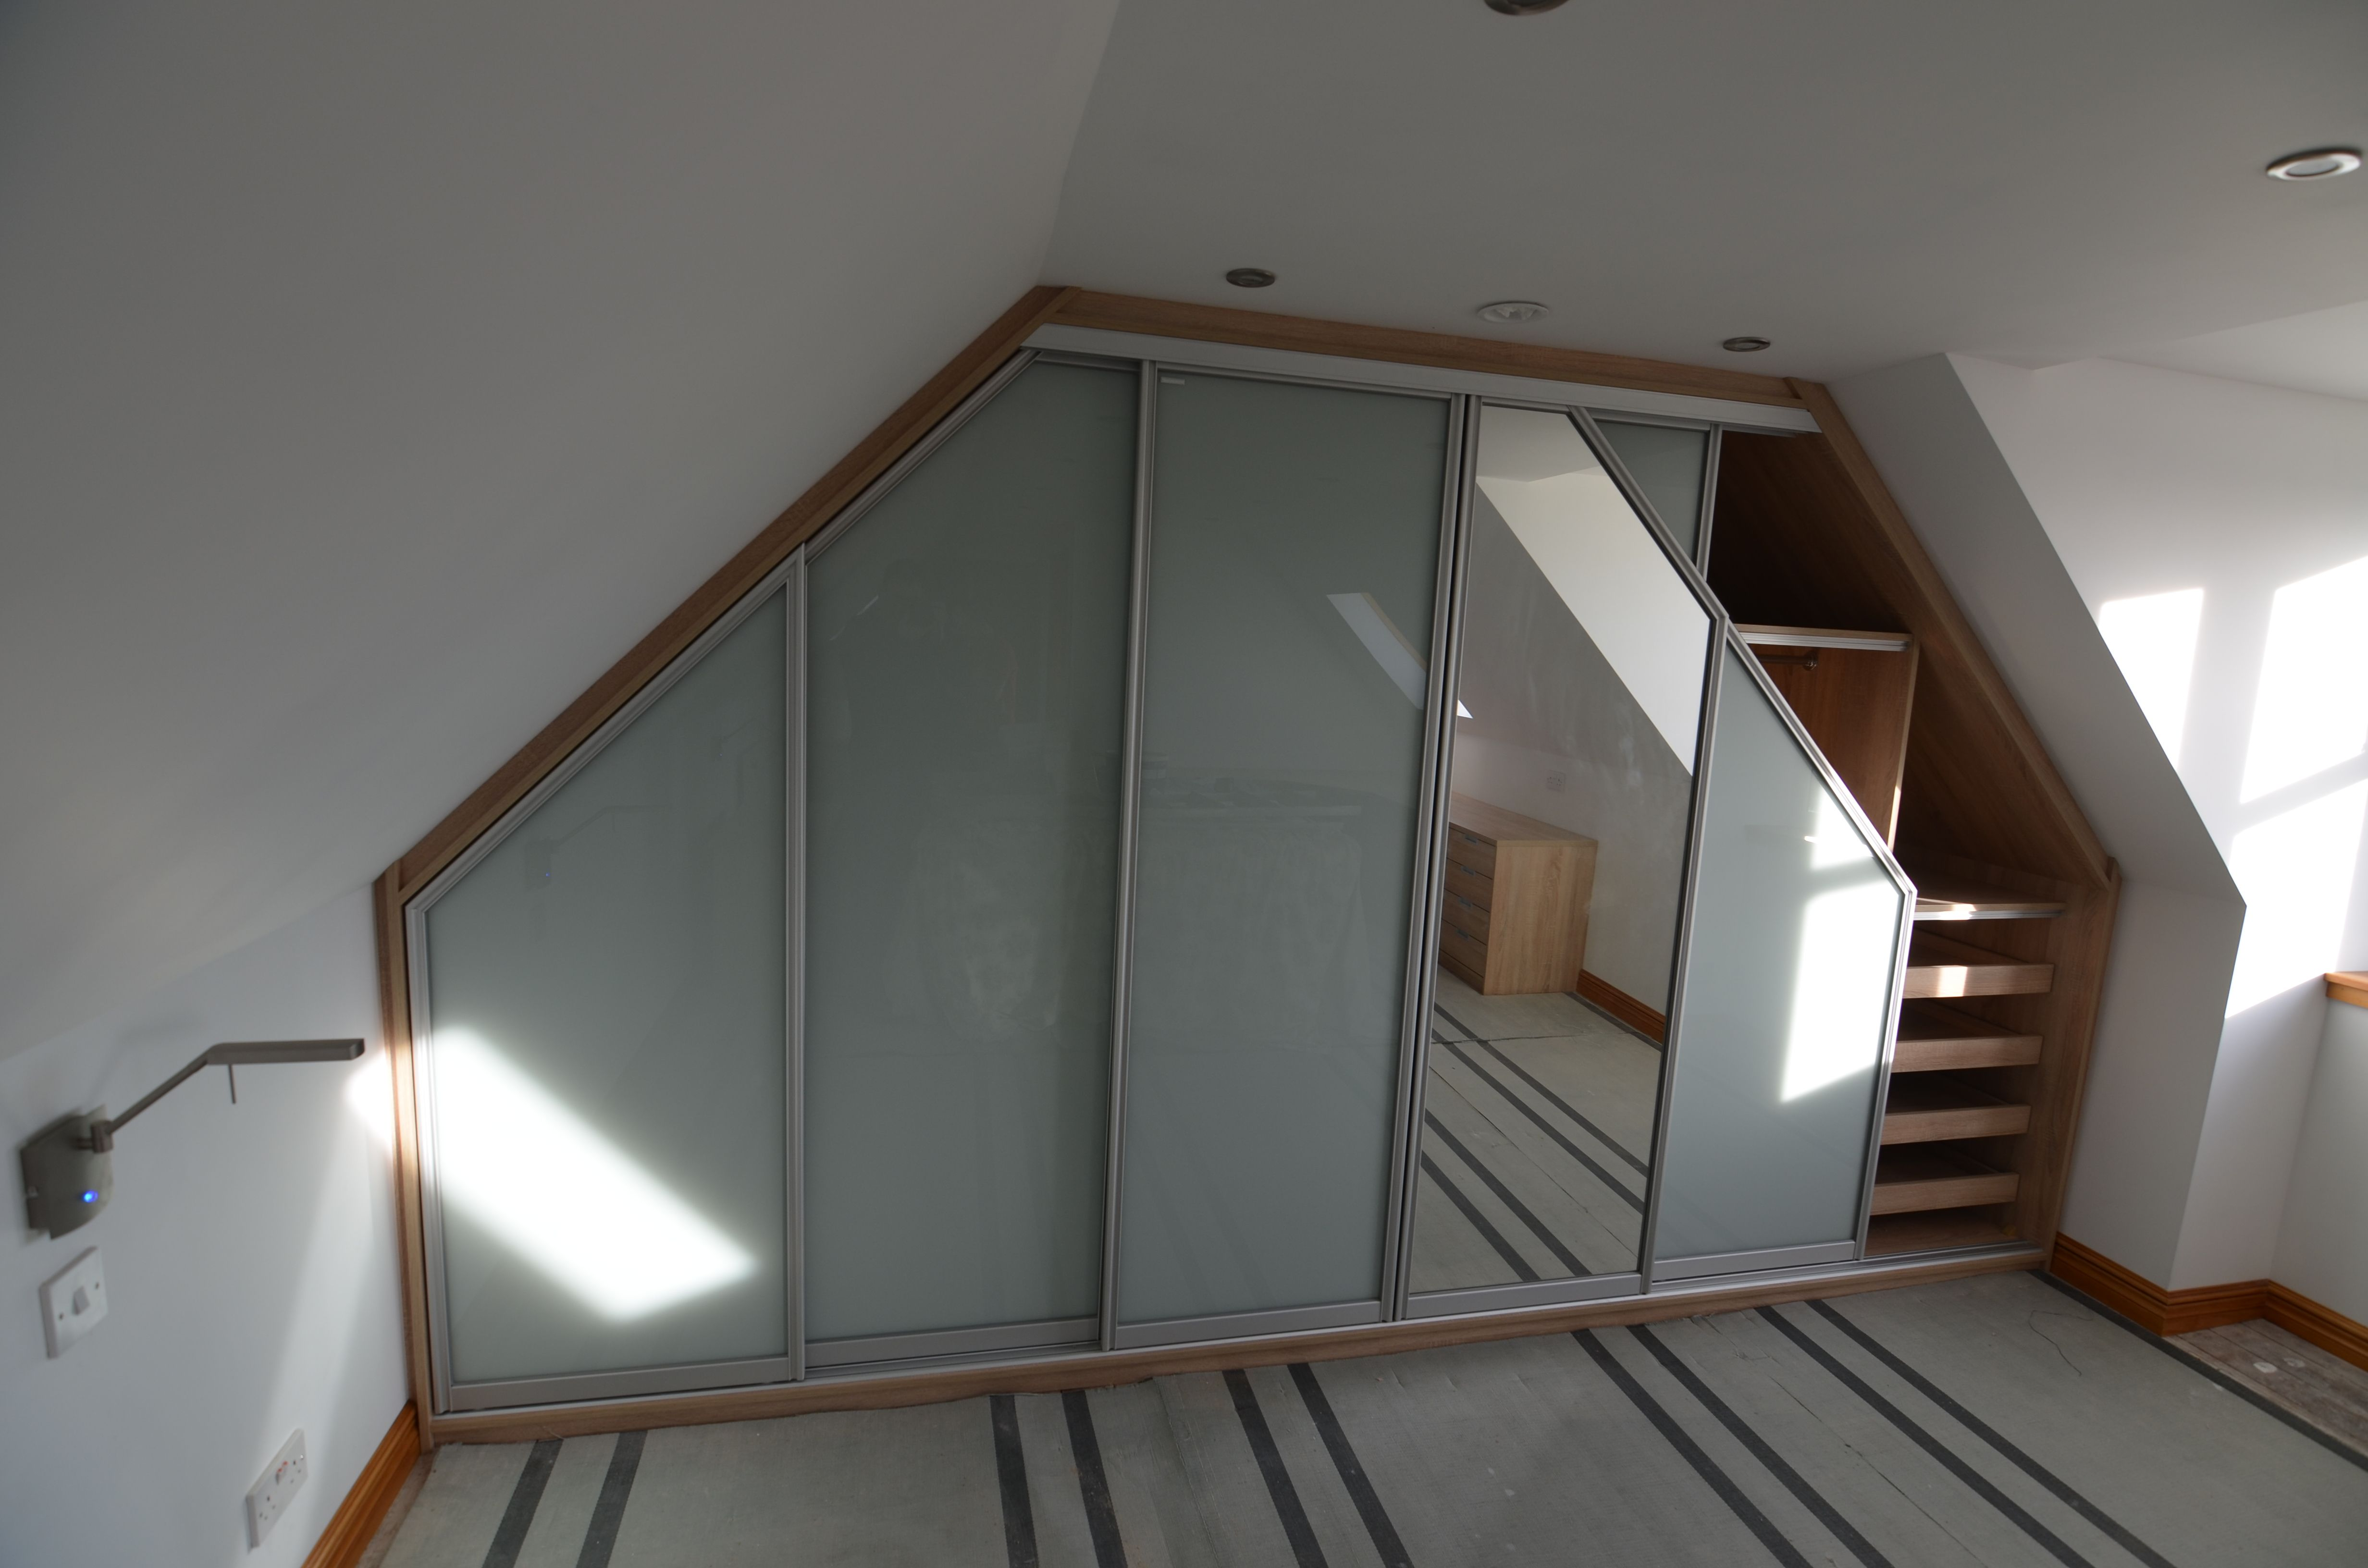 Lovely 6 Door Slanted Wardrobe For An Attic Room In Glossy Glass